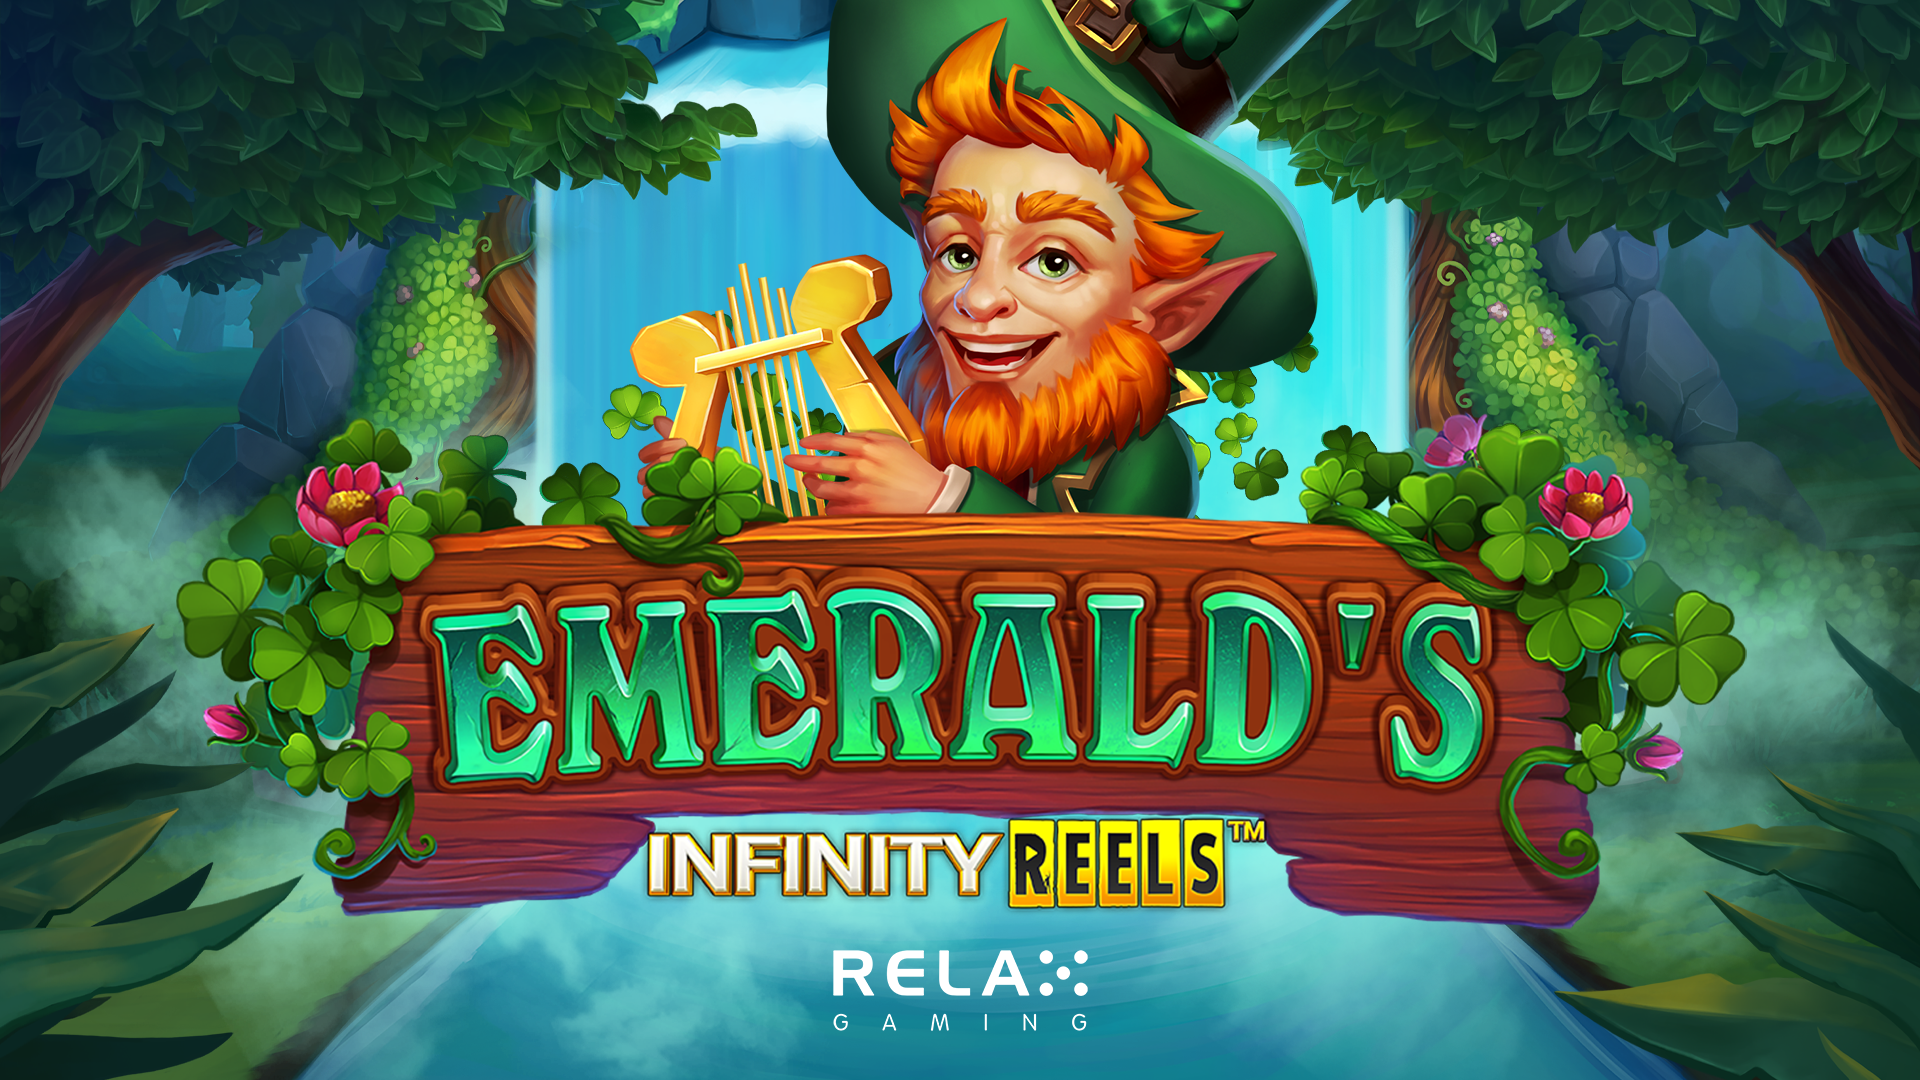 Relax Gaming brings good luck with Emerald's Infinity Reels